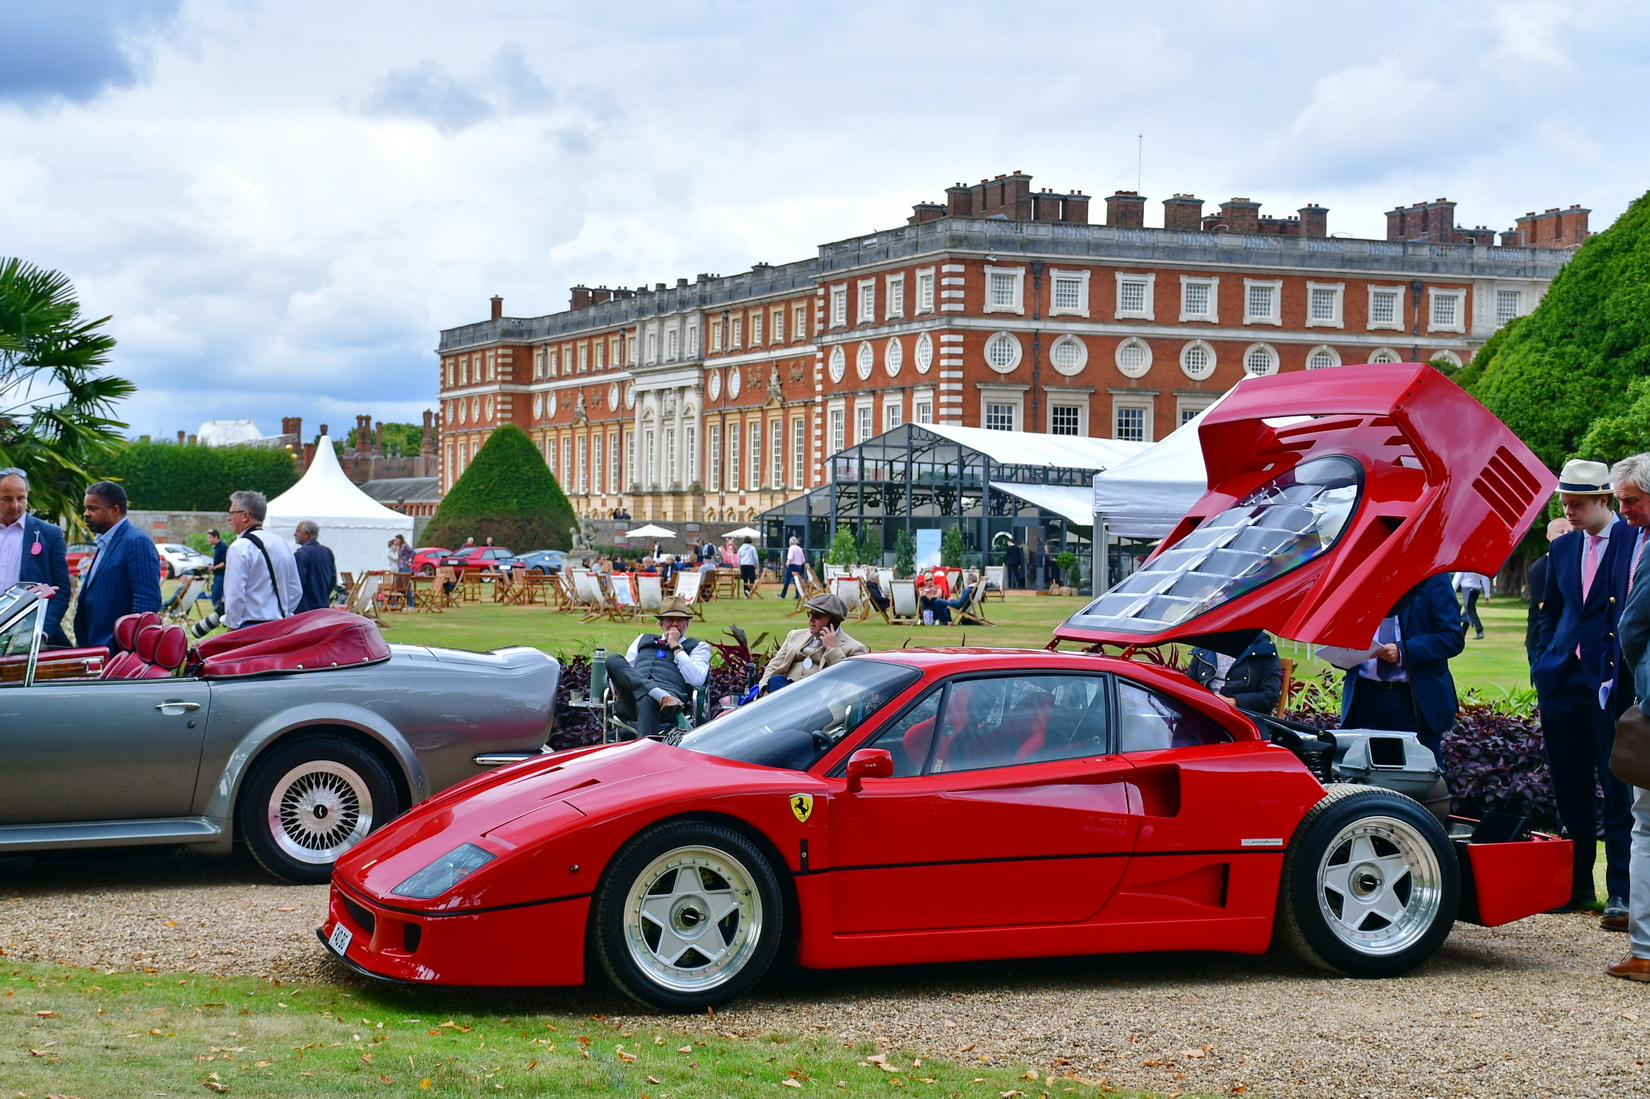 A red Ferrari F40 with open bonnet on display during the Concours of Elegance with Hampton Court Palace in the background